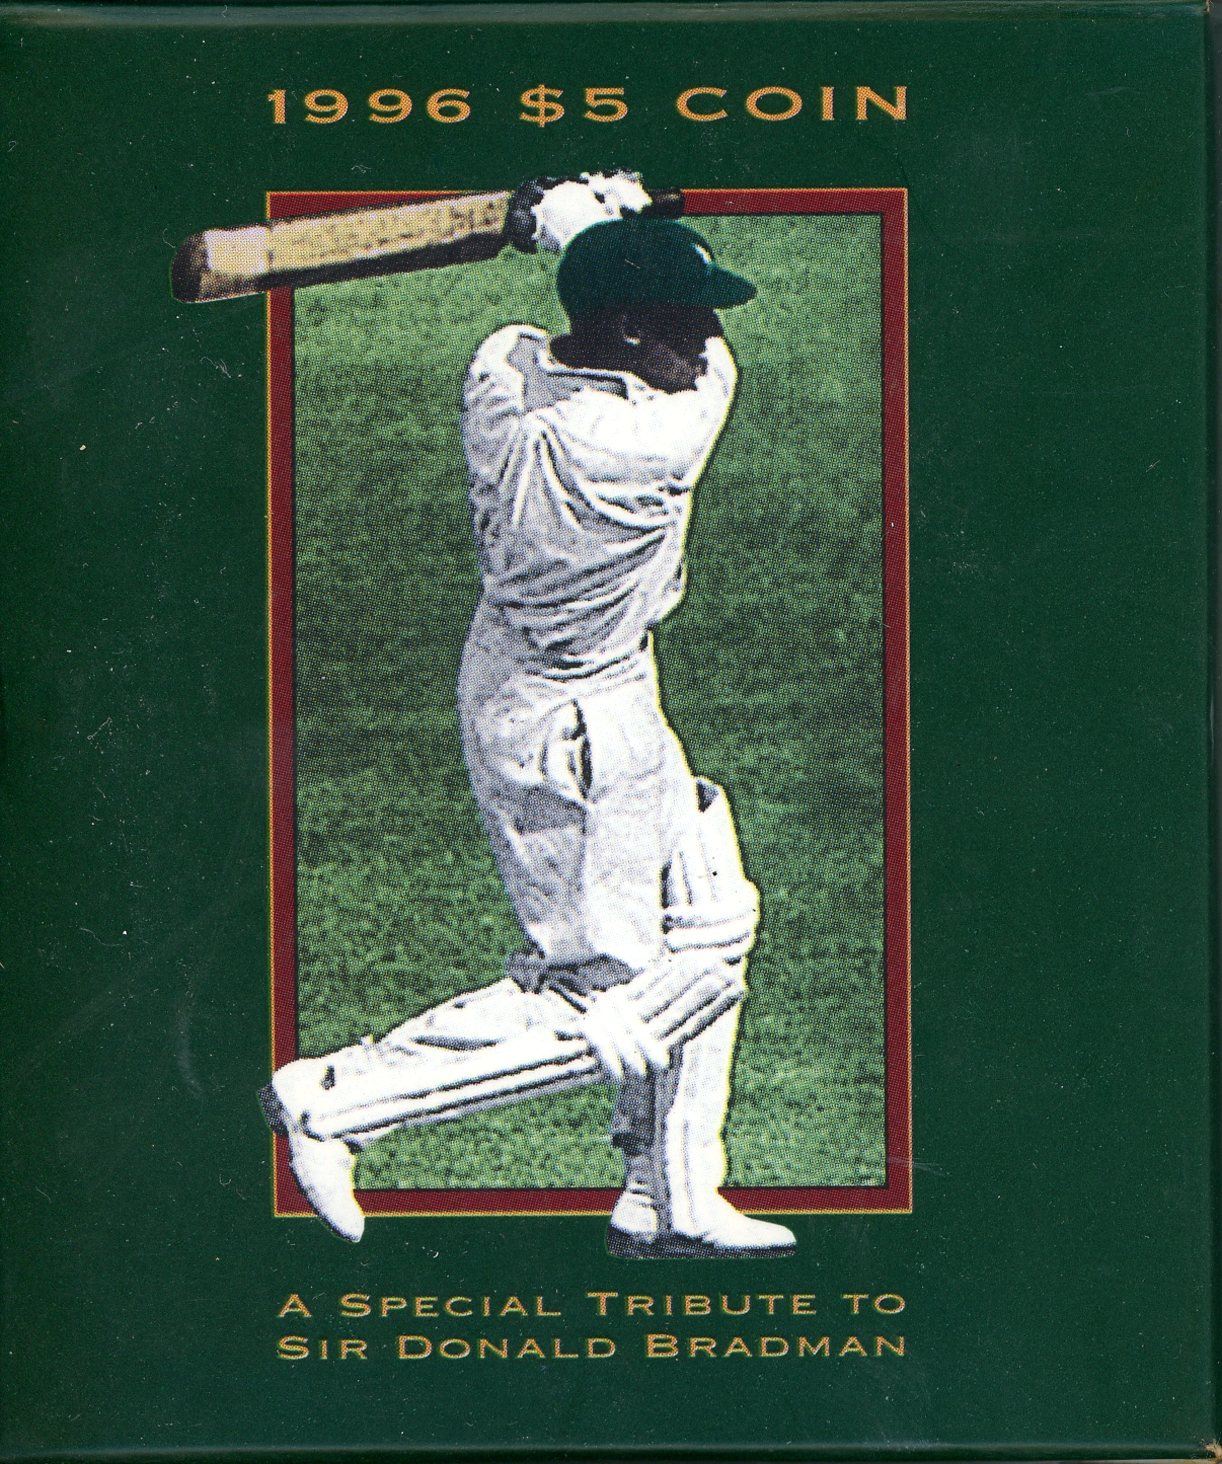 Thumbnail for 1996 Sir Donald Bradman $5 Proof Coin